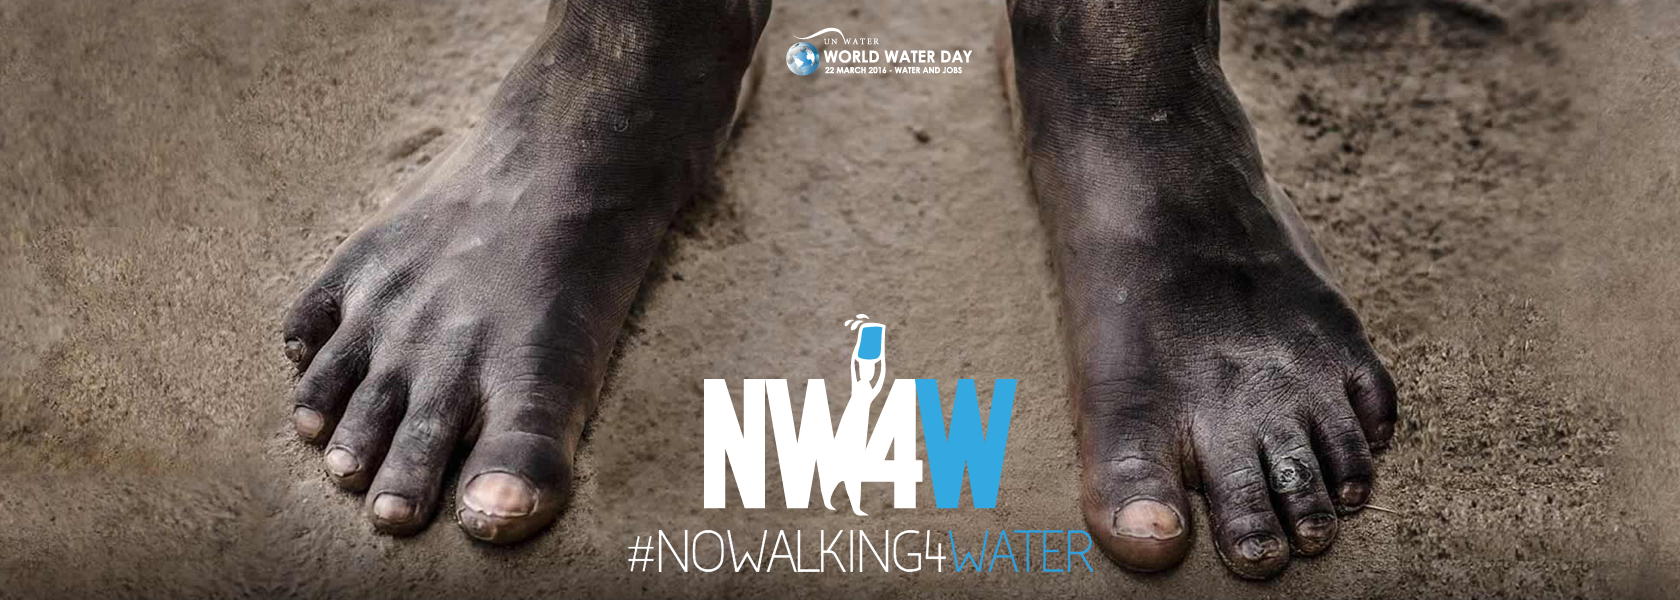 #nowalking4water